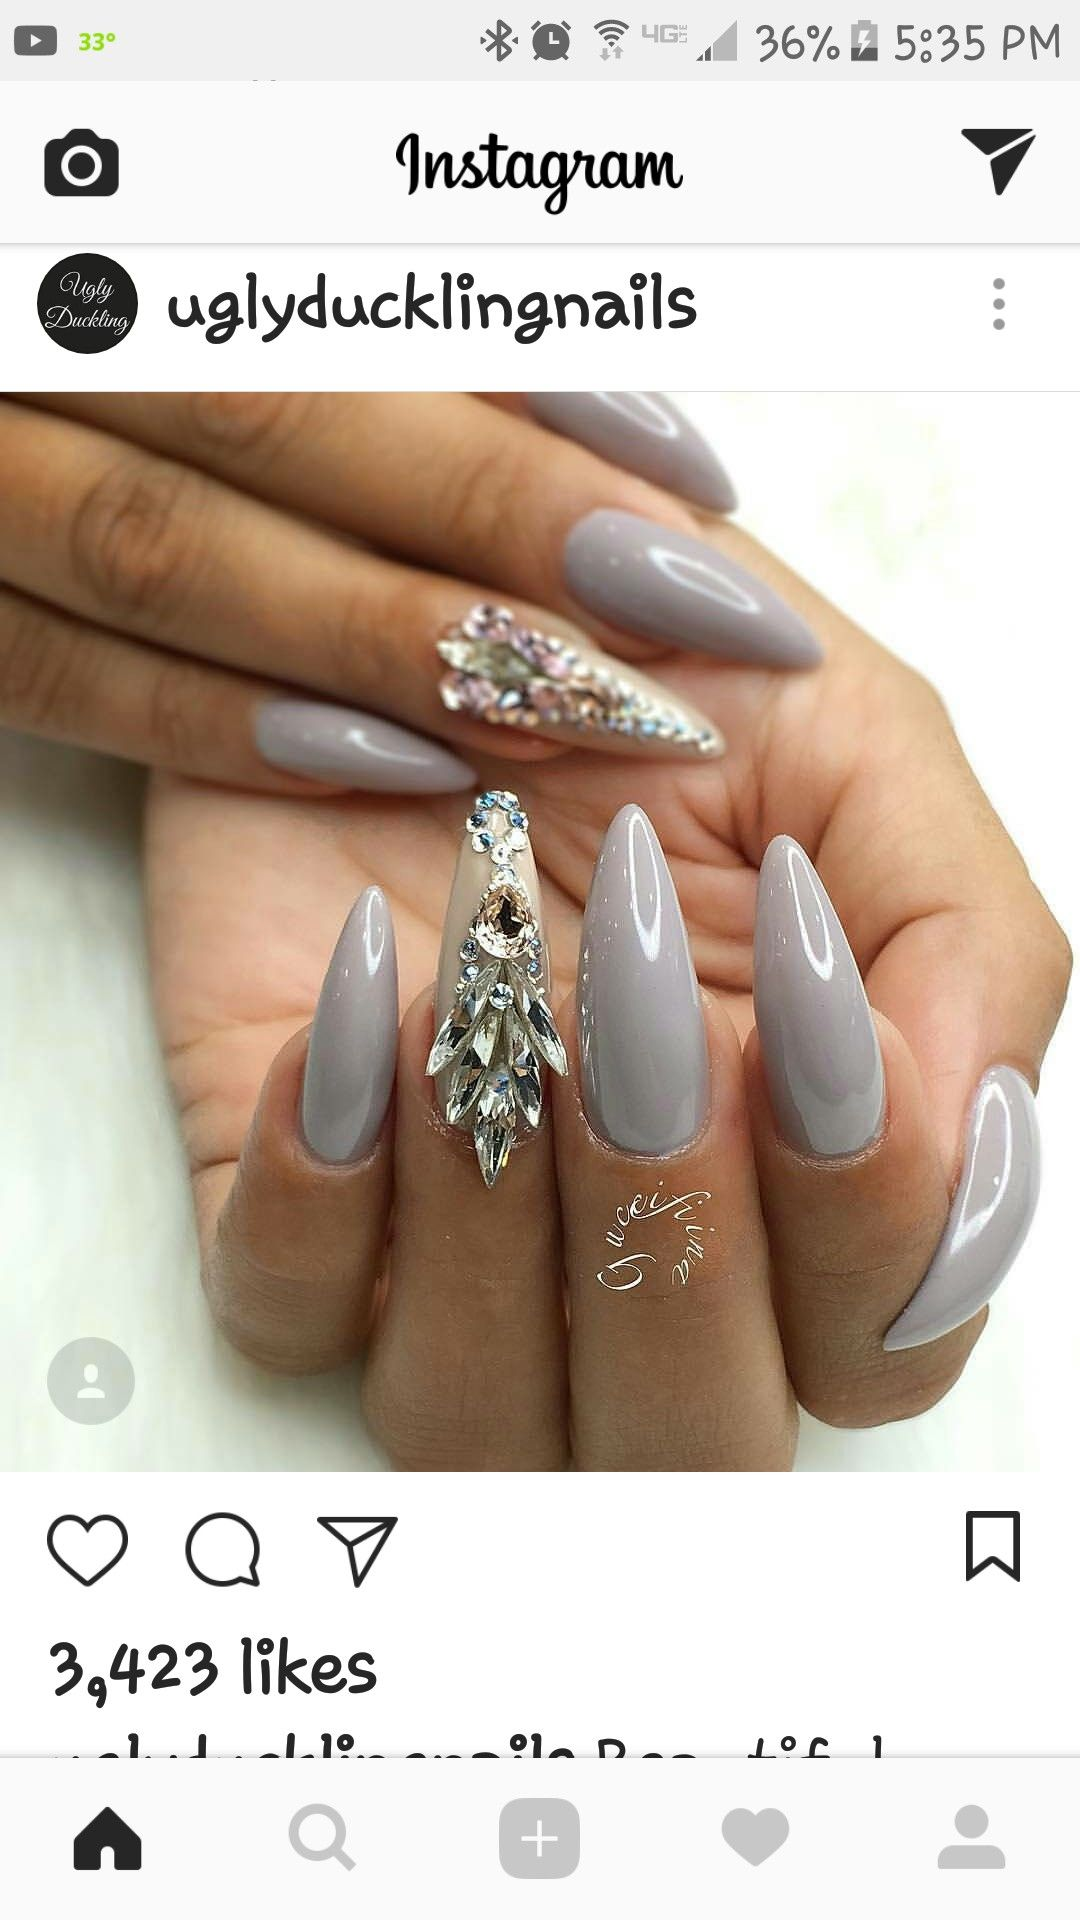 Pin by Lupe Lopez on Makeup | Pinterest | Makeup, Nail nail and ...